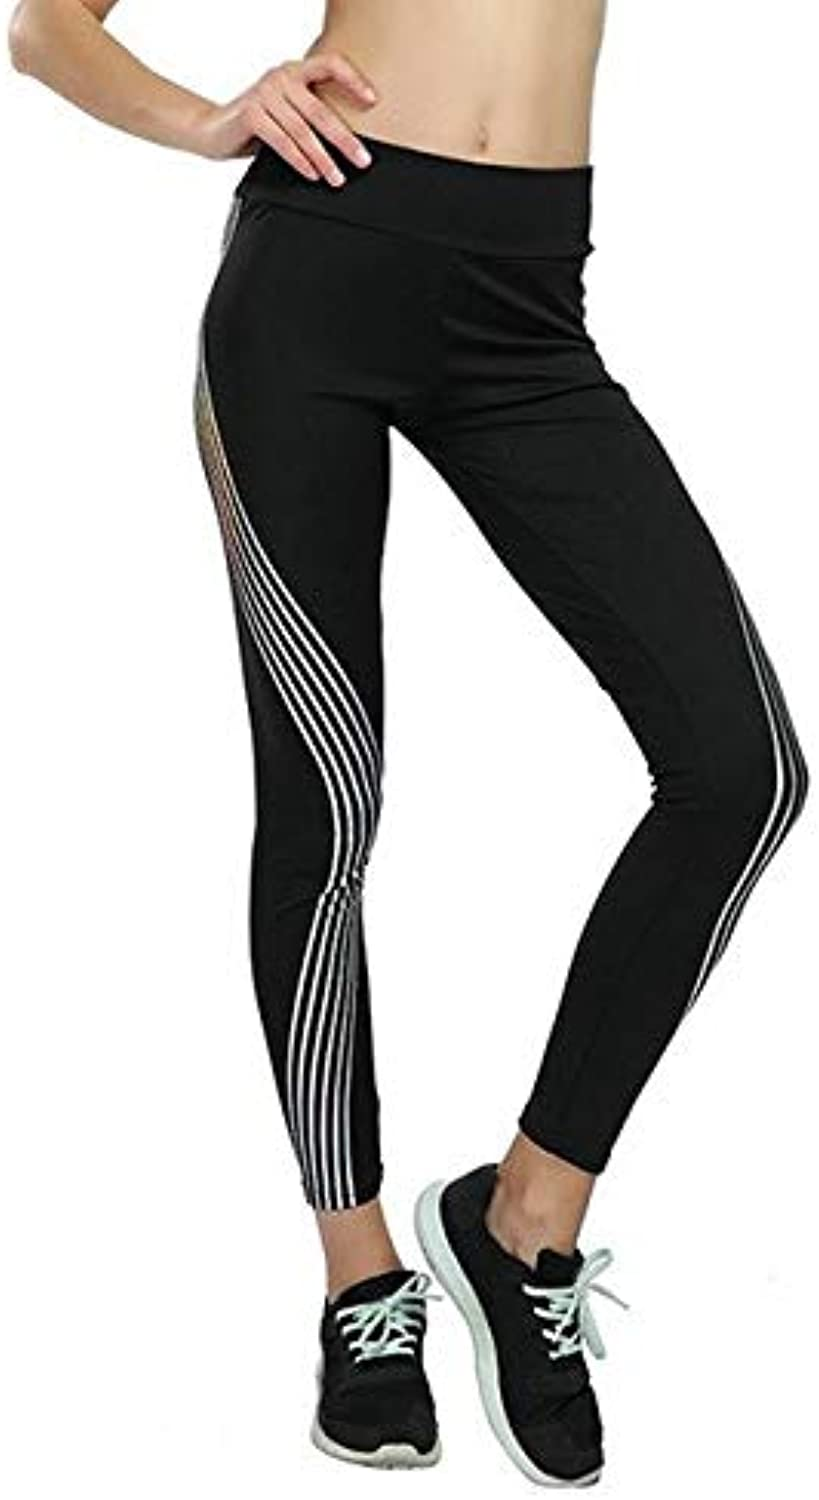 Greenvie Female Yoga Leggings High Waist Running Leggings Tights Jogging Gym Fitness Jegging Joggers Compression a Pants as Photo, M